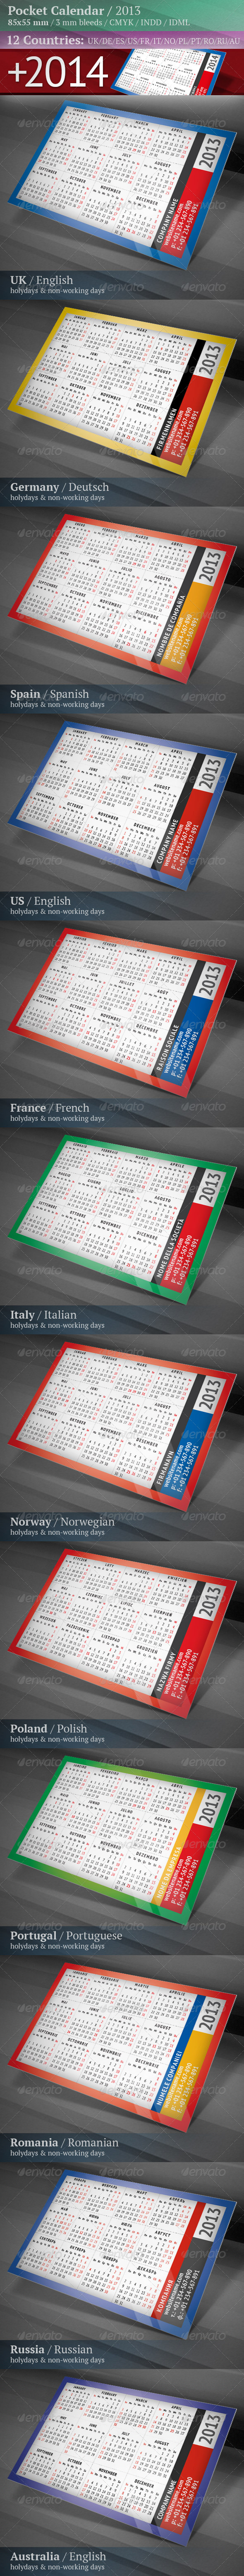 GraphicRiver Pocket Calendar 2013 & 2014 Multilingual 3496811